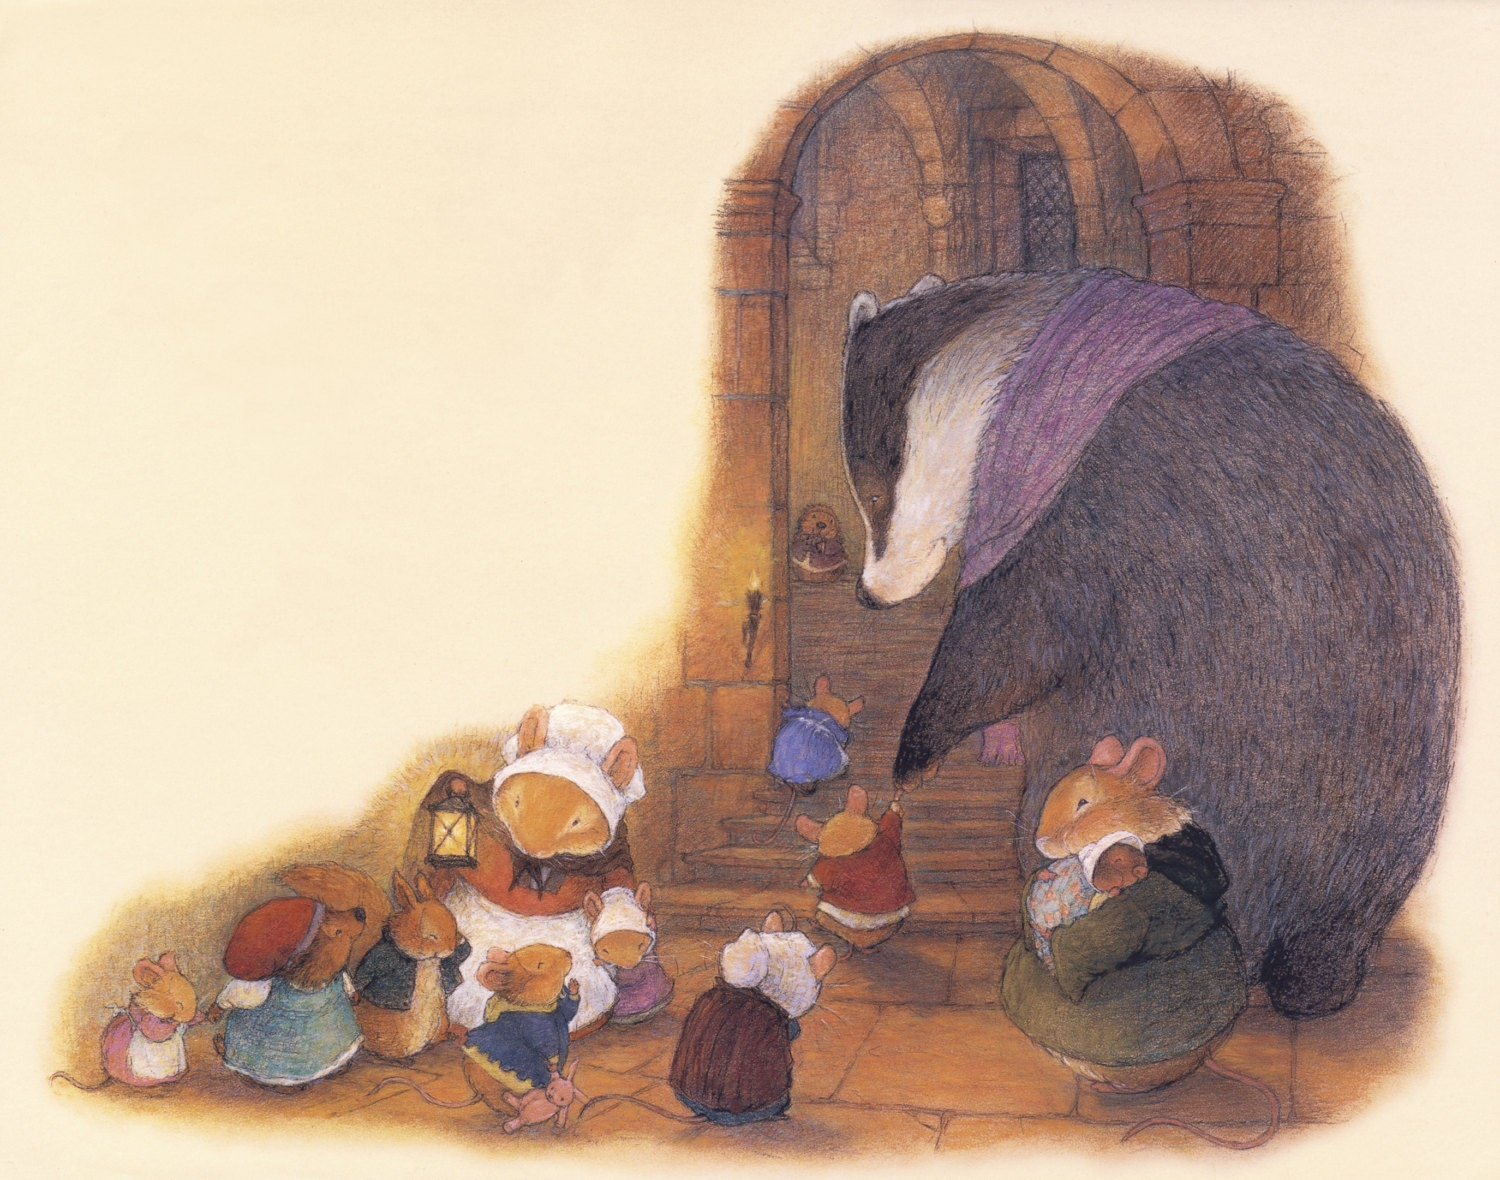 Bedtime at Redwall Abbey